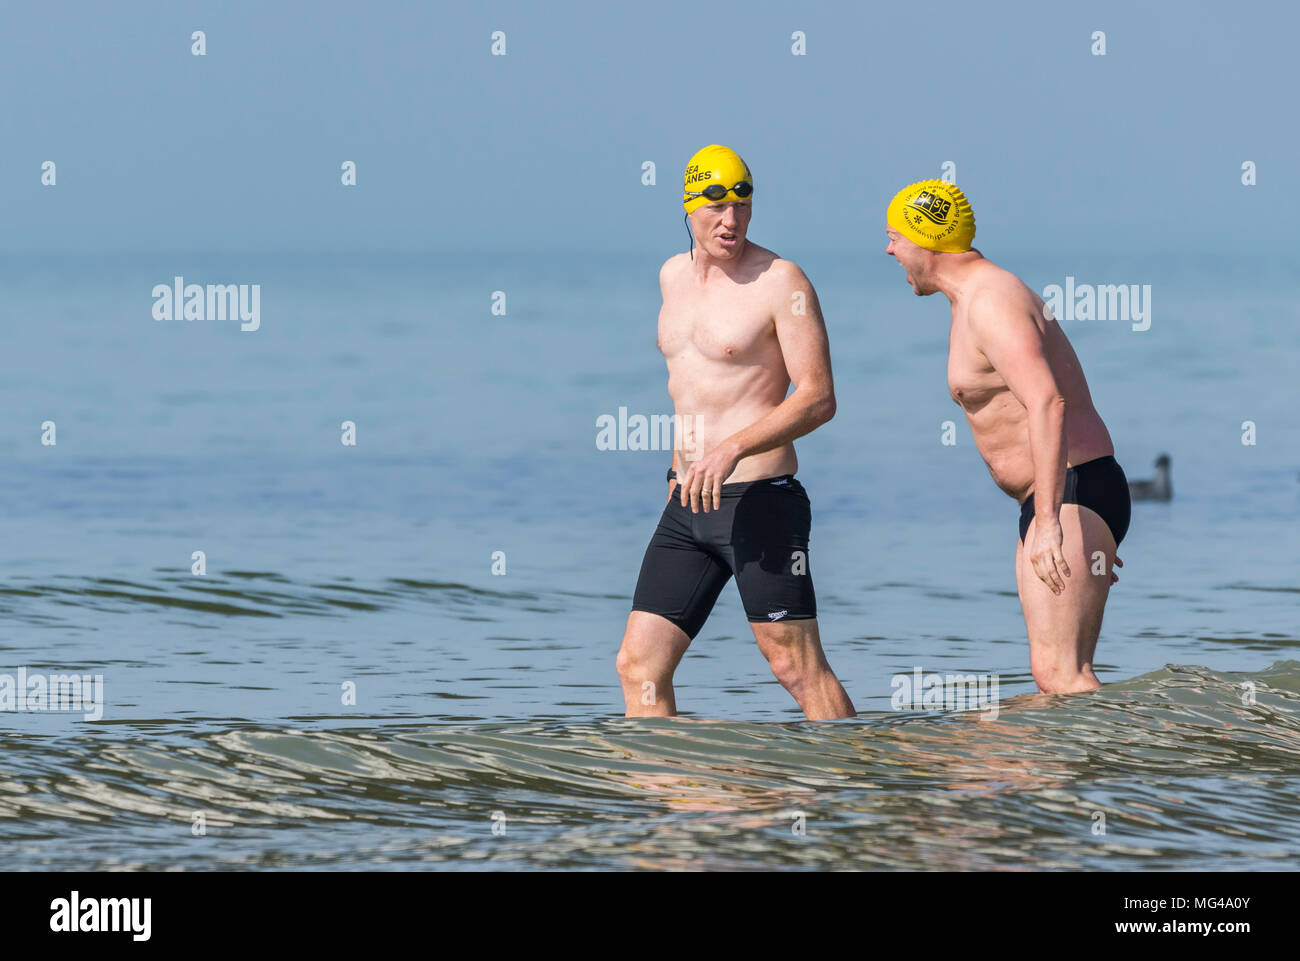 d0f58804b89 A pair of male swimmers wearing swimming caps and shorts entering the sea  on a hot